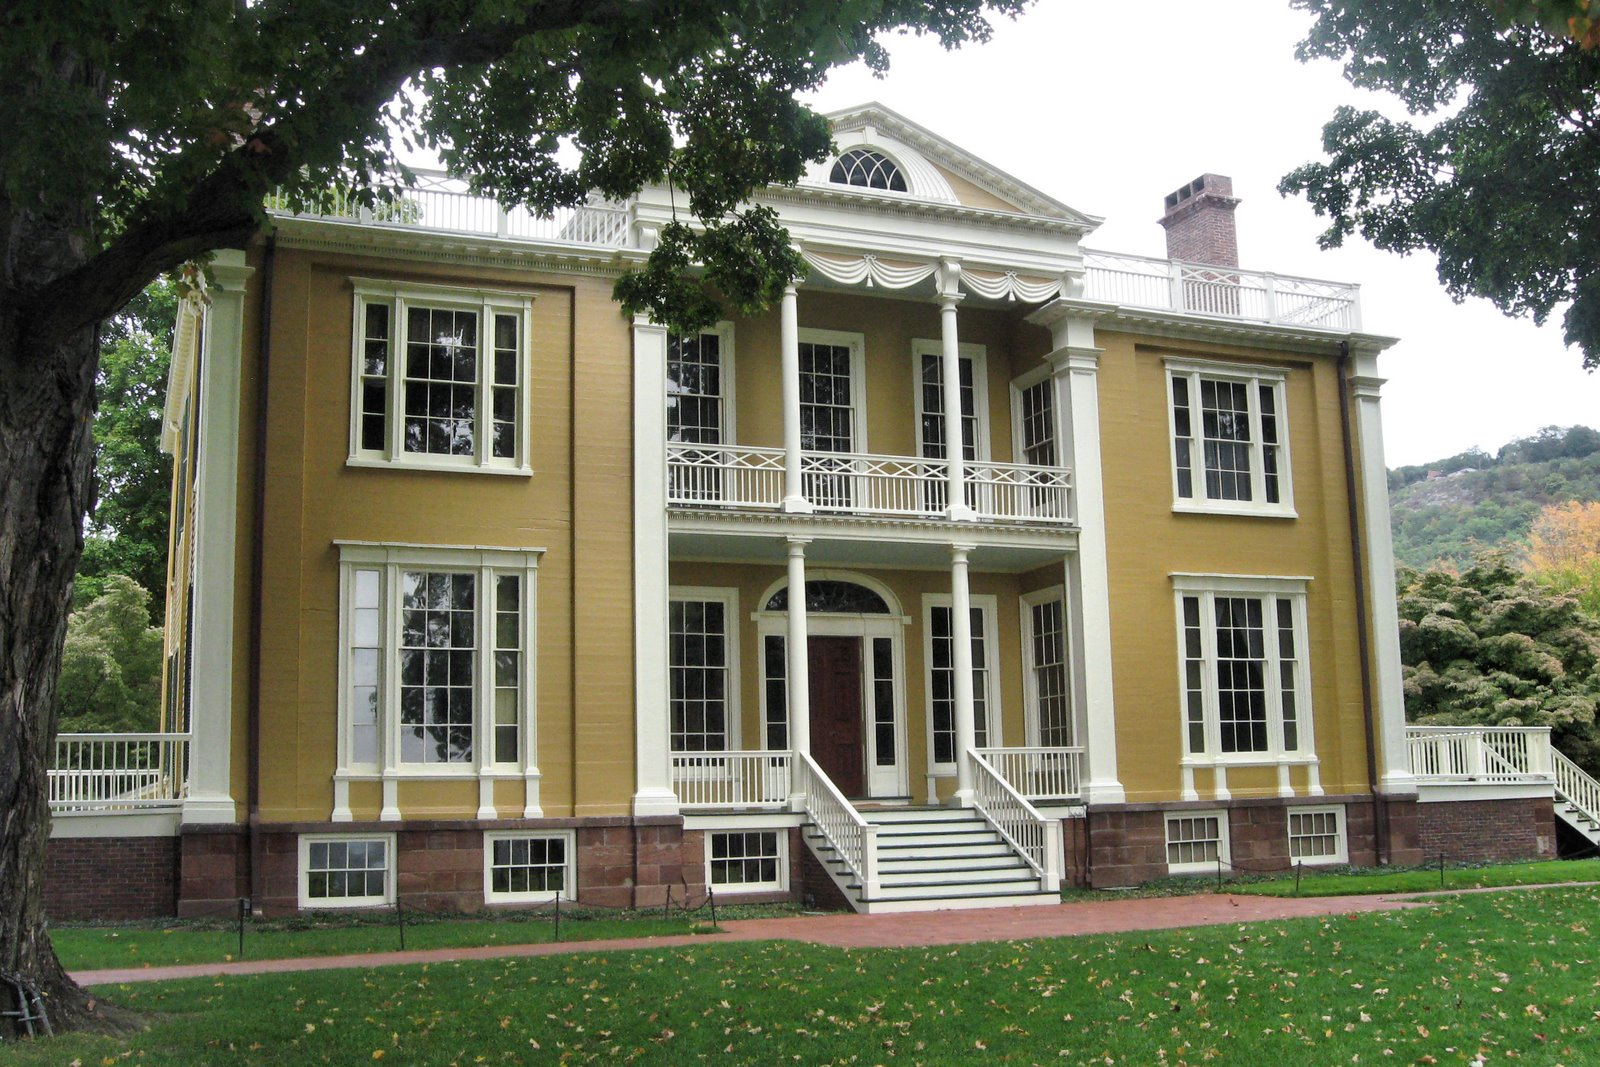 Boscobel Historic House Museum